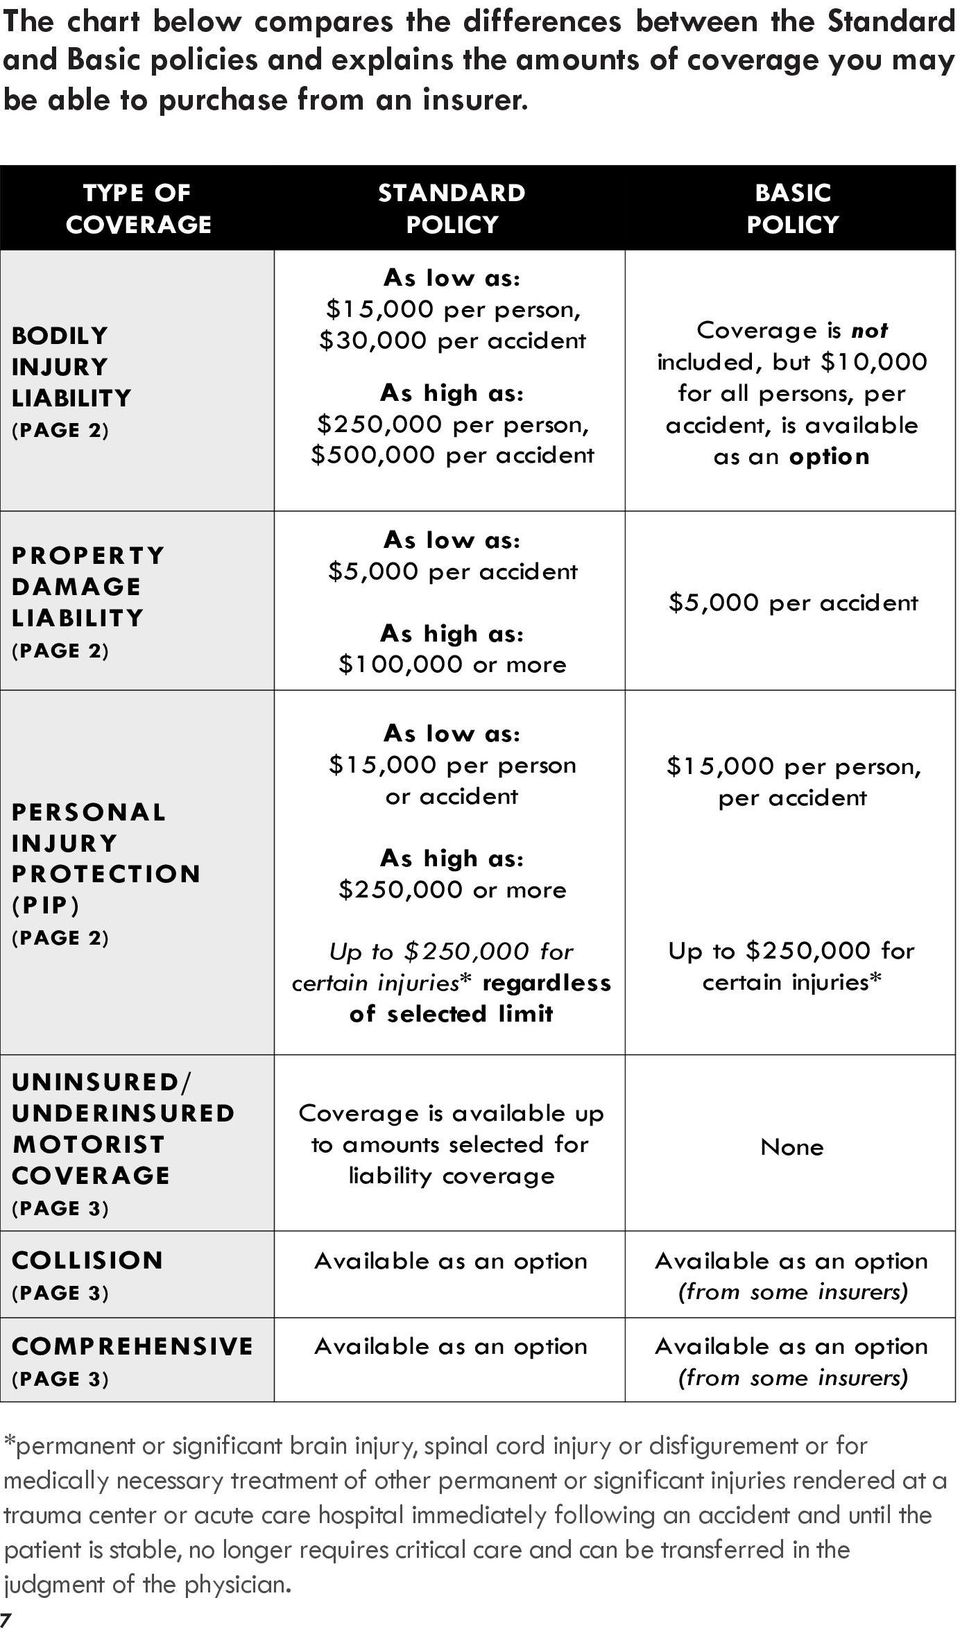 not included, but $10,000 for all persons, per accident, is available as an option PROPERTY DAMAGE LIABILITY (PAGE 2) PERSONAL INJURY PROTECTION (PIP) (PAGE 2) UNINSURED/ UNDERINSURED MOTORIST